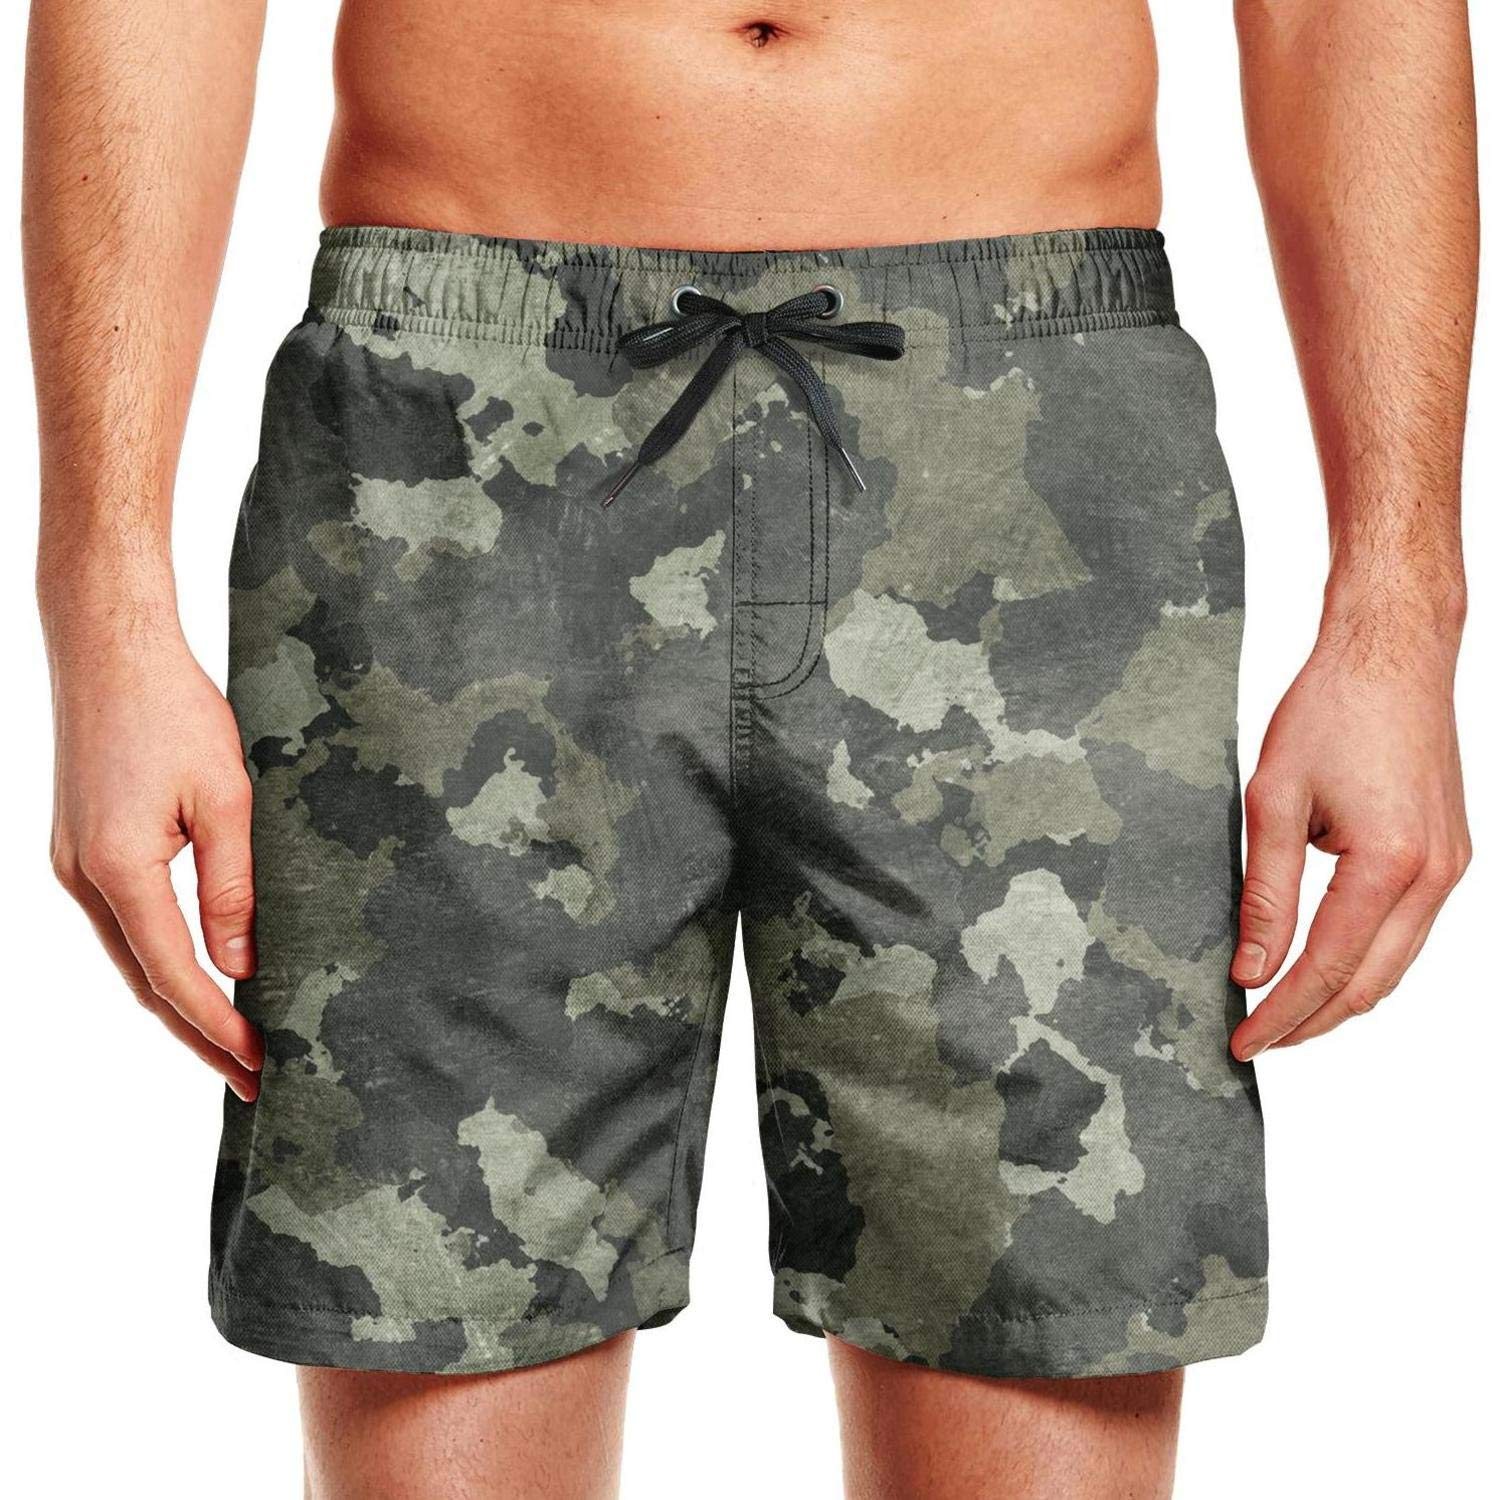 ZYLIN Mens Swim Trunks Printed Military Camo Camouflage Texture Beach Bathing Suits Short Slim Fit with Pockets